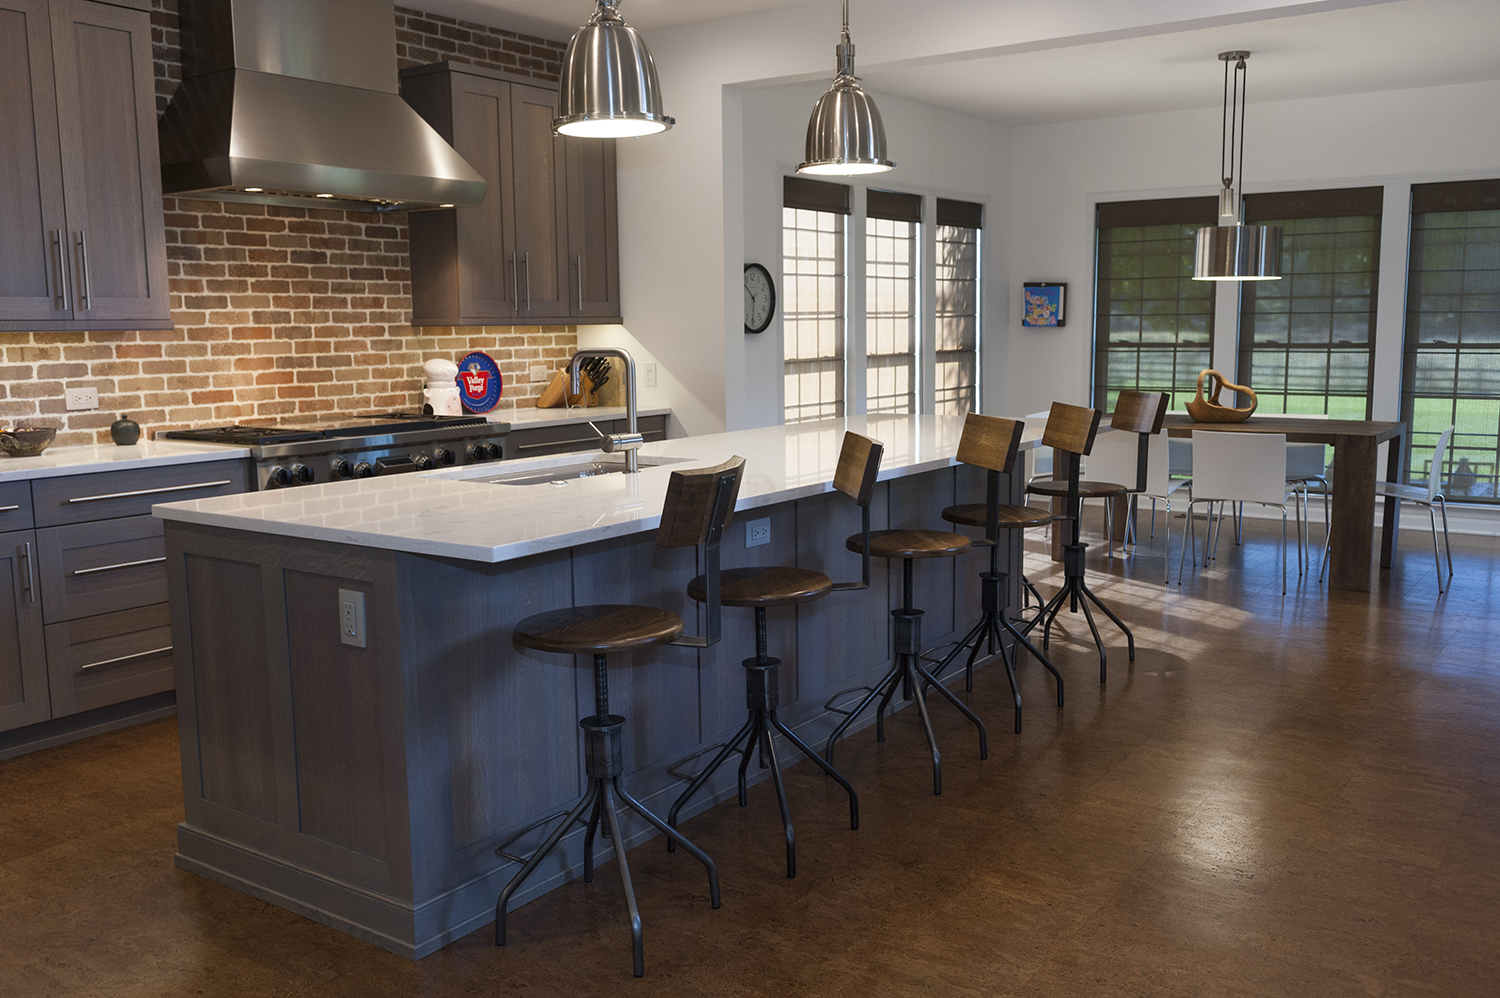 kitchen remodle ceiling fans with bright lights remodeling contractor west chester pa pine street carpenters